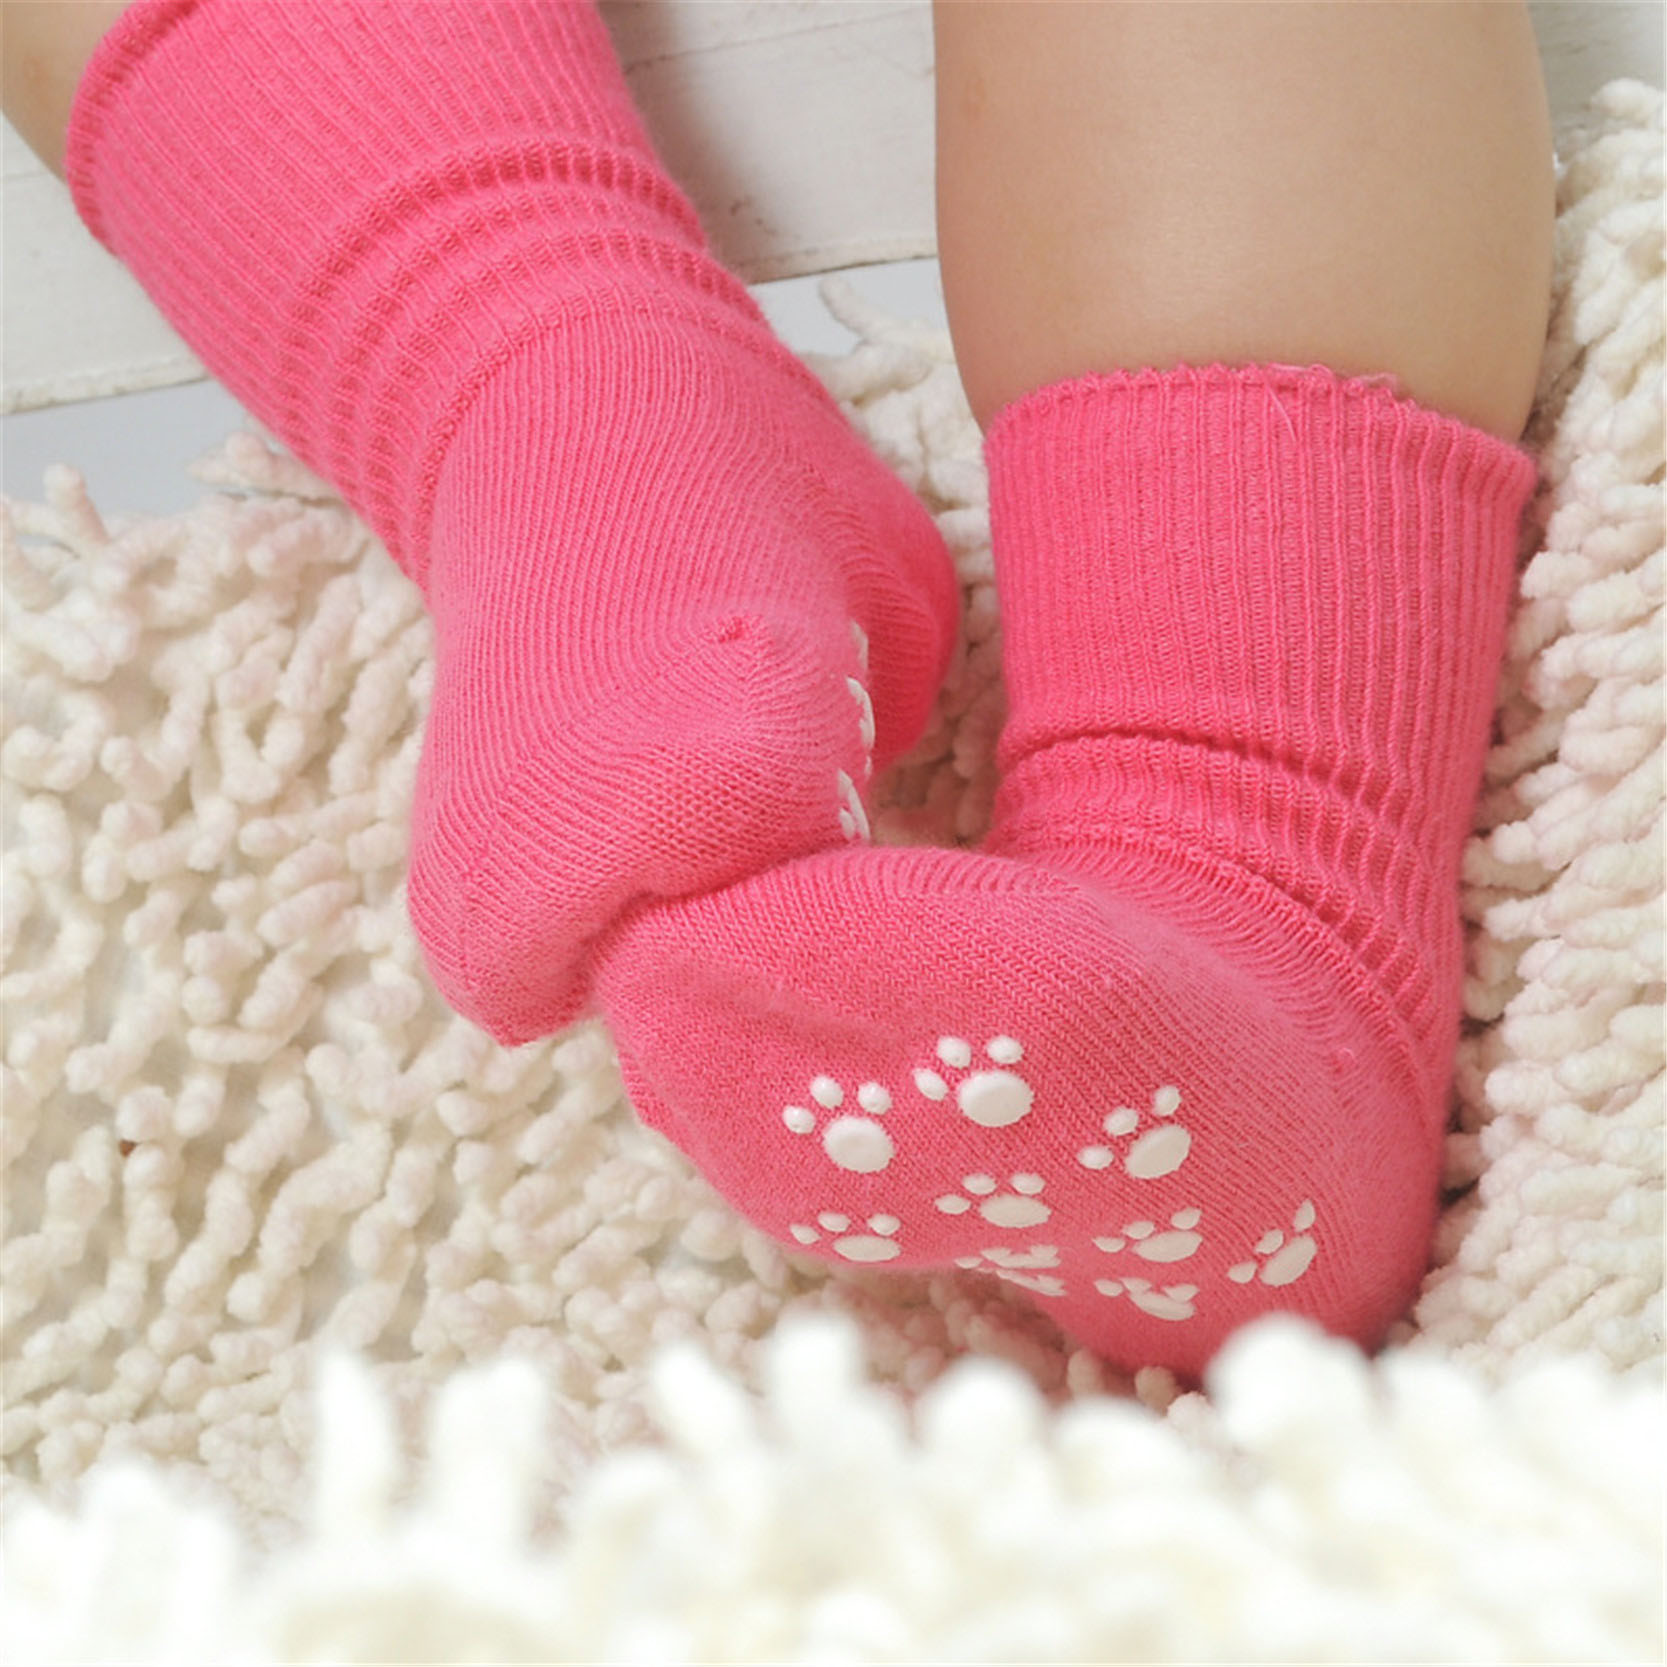 купить New Born Baby Socks Cotton Anti Slip Sport Children Socks For Girls Boys Unisex Toddler 1-3 Years Kid Socks Candy Color по цене 63.24 рублей